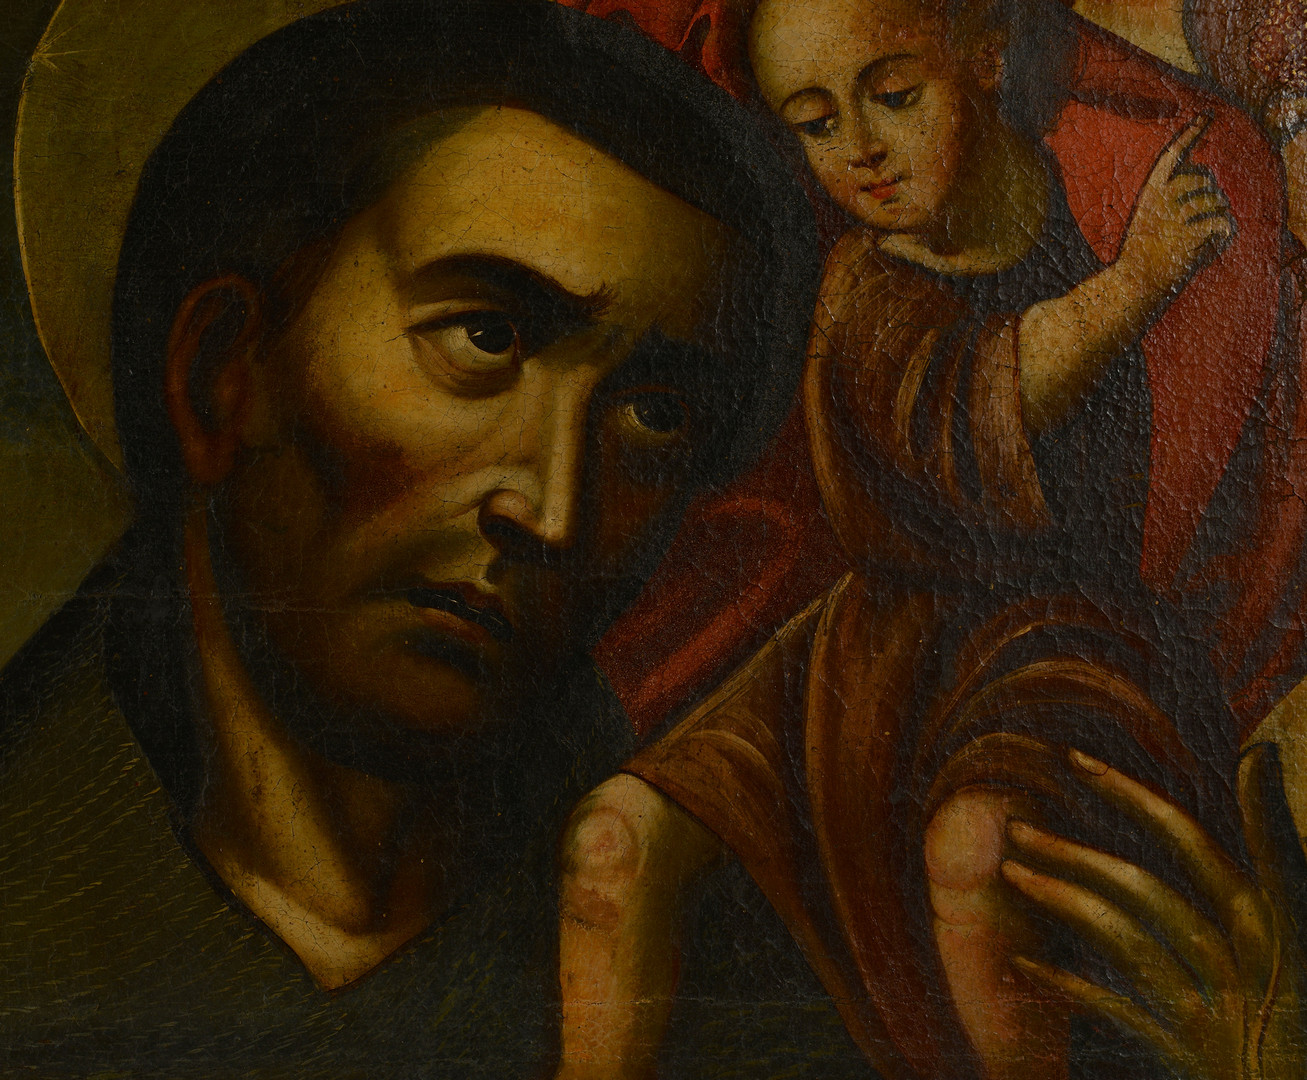 Lot 706: Manner of El Greco, Saint with Child